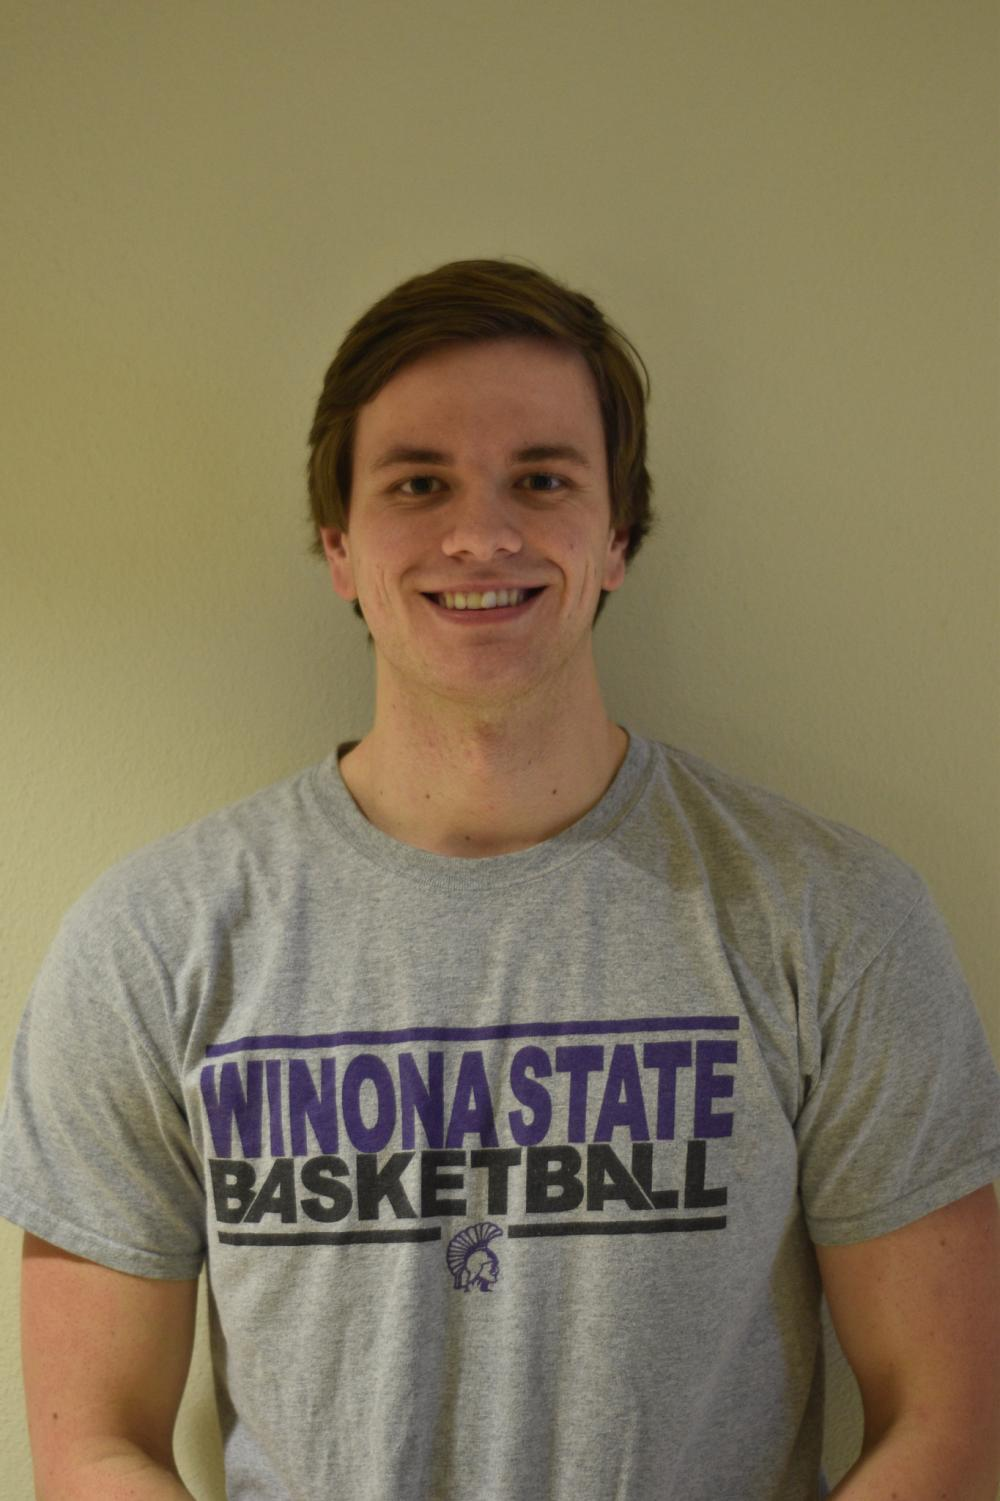 Junior Brandon Goebel is moving to up to the men's basketball team after serving as the team's team manger.